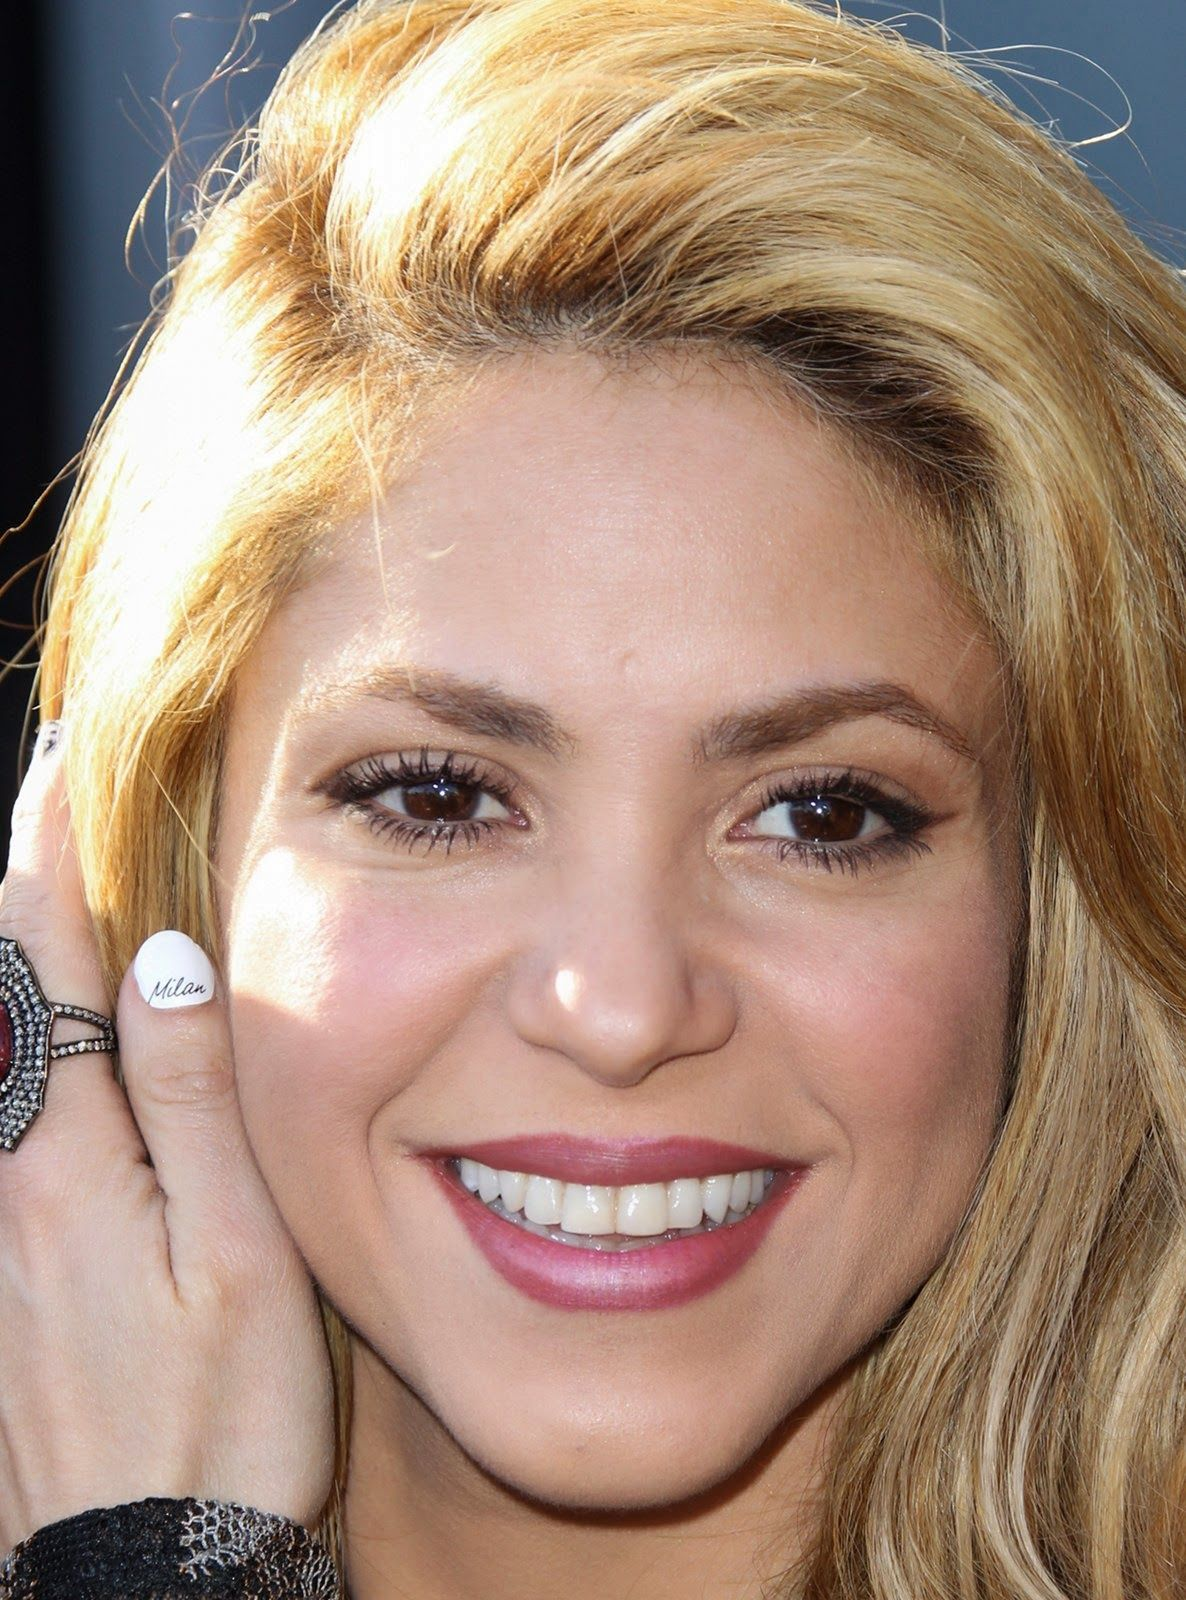 Shakira ... Look at her Finger :) it says Milan....how cute ...